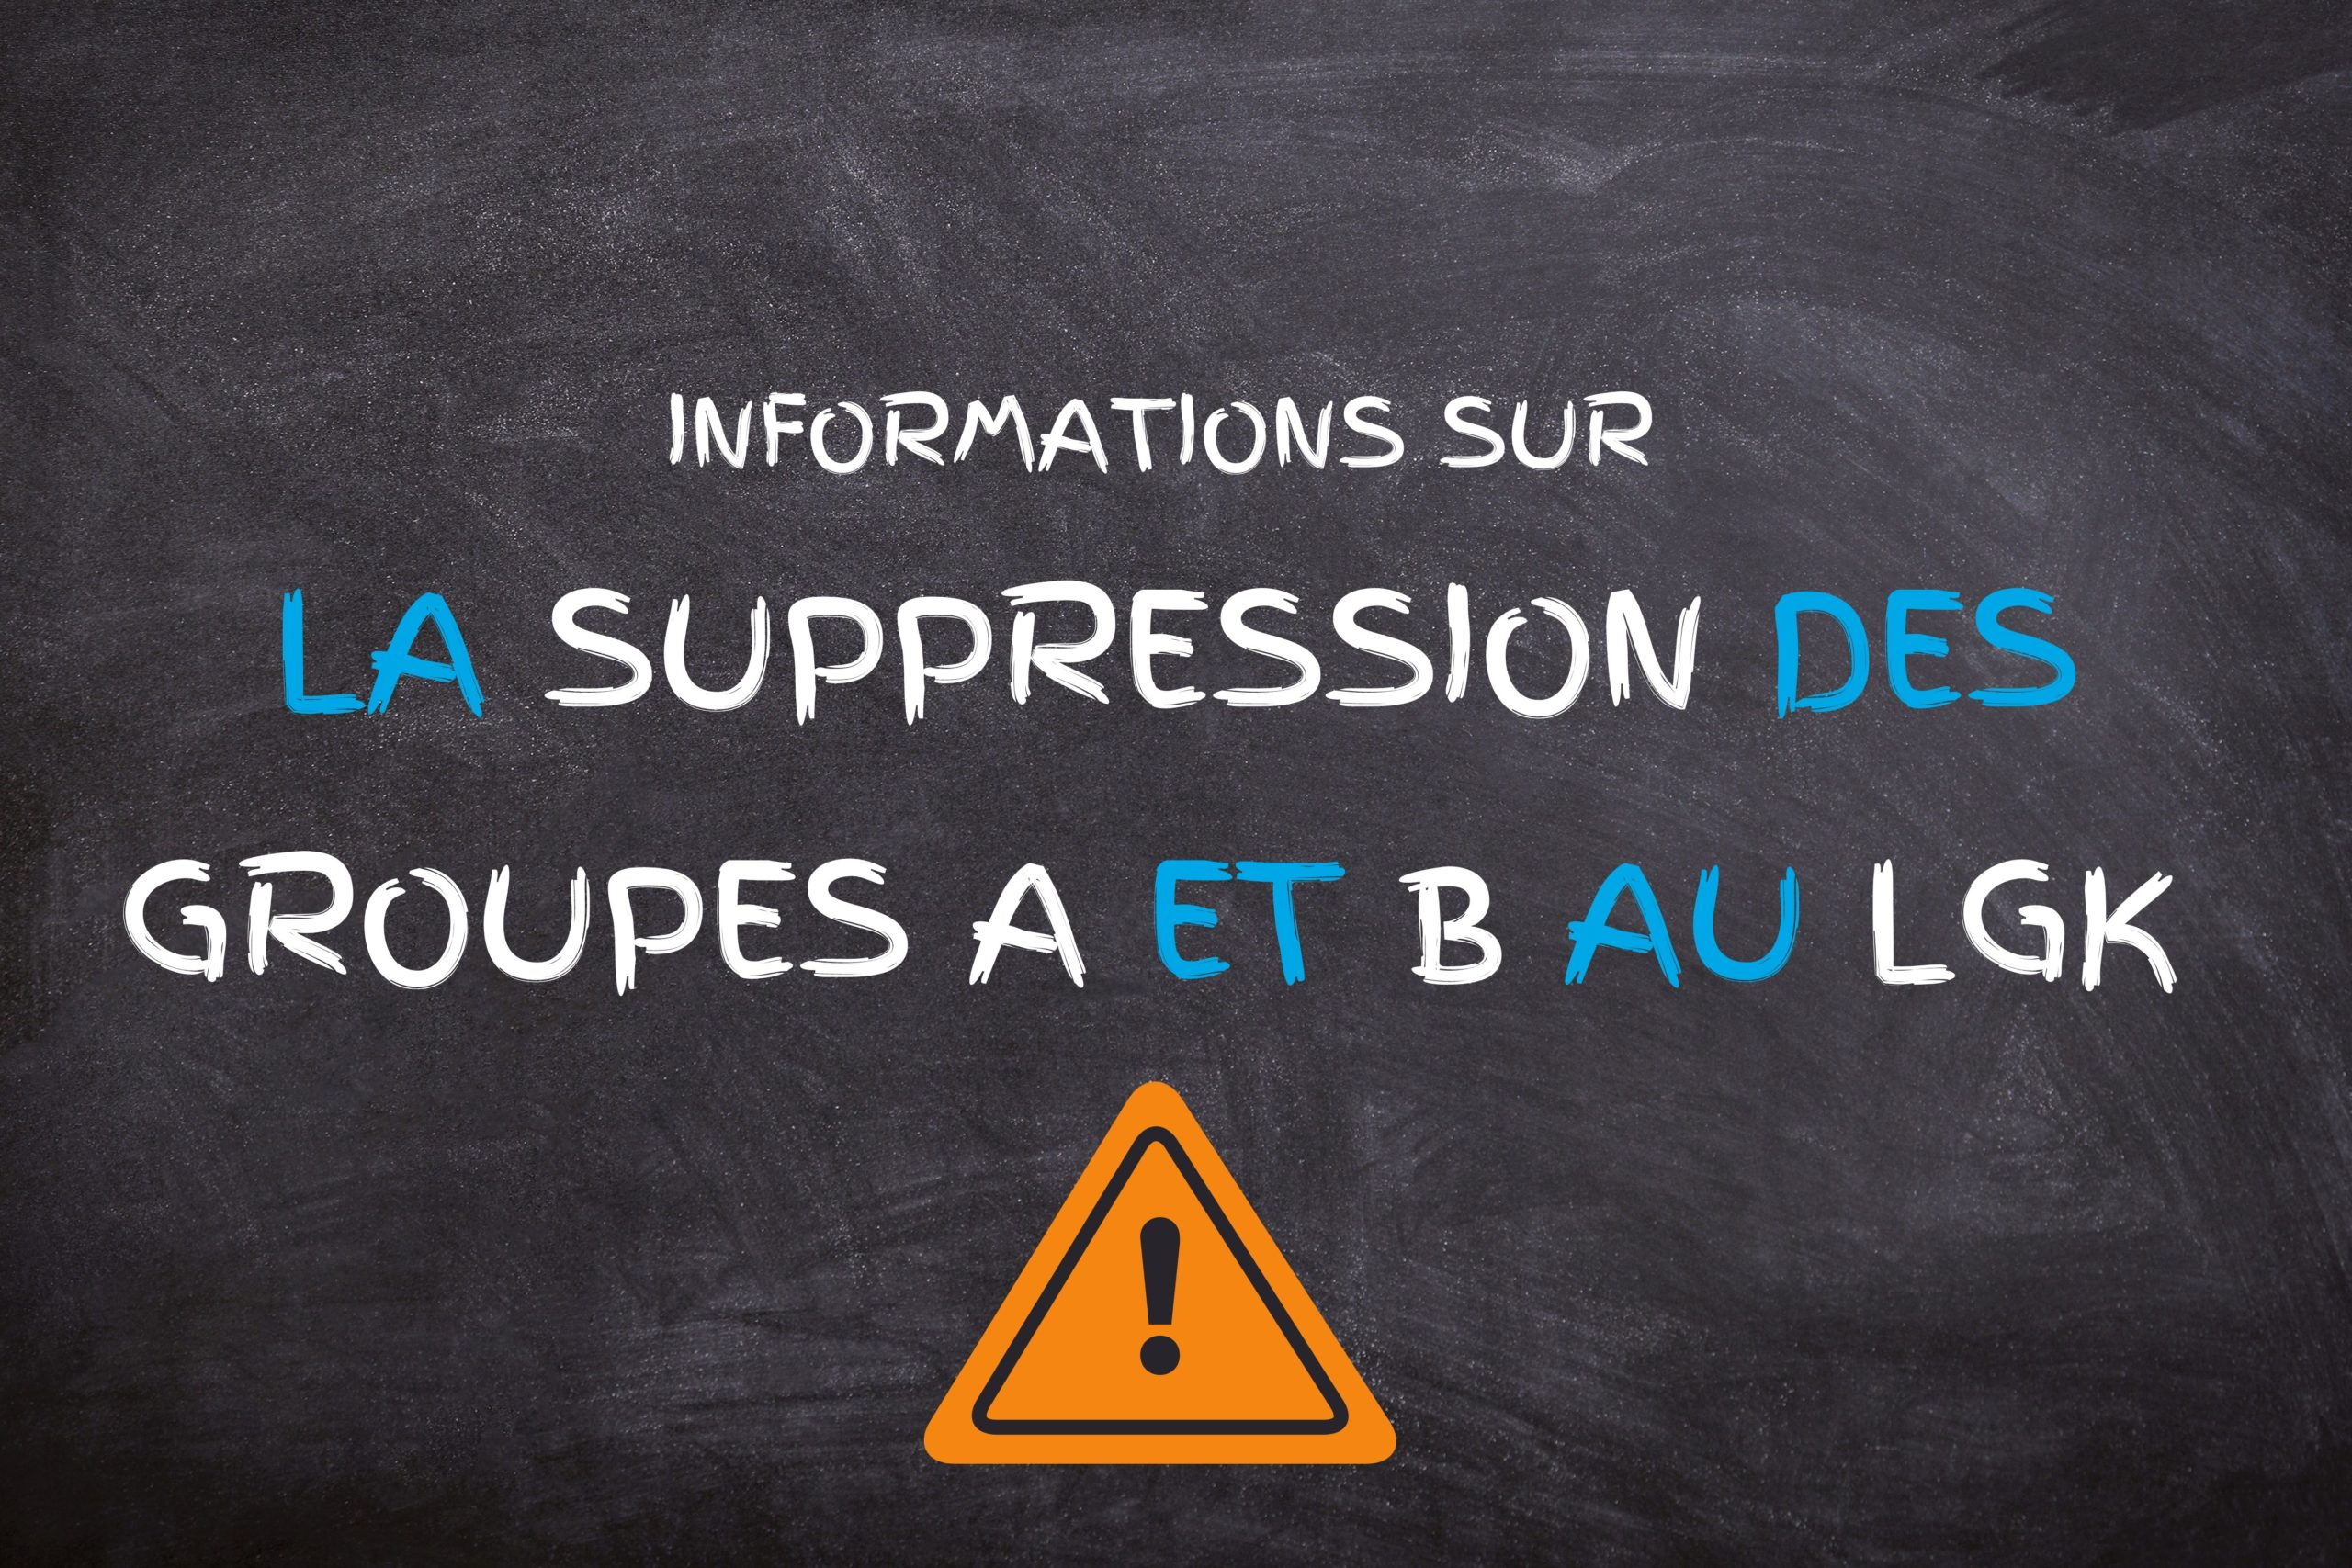 Communication sur la suppression des groupes A et B